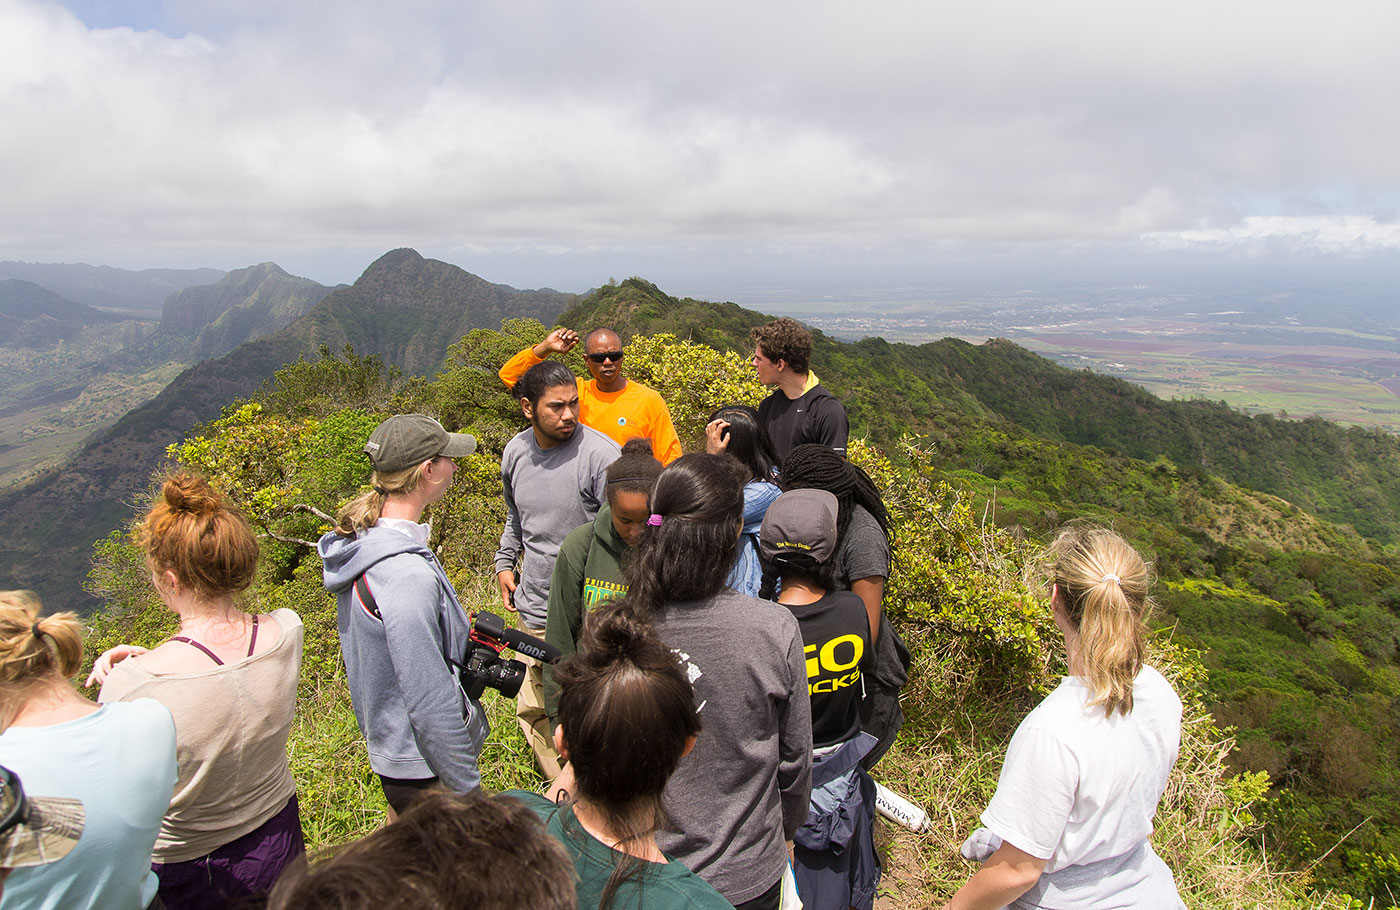 A group of students checking out the view from the top of a green mountain in Hawaii.